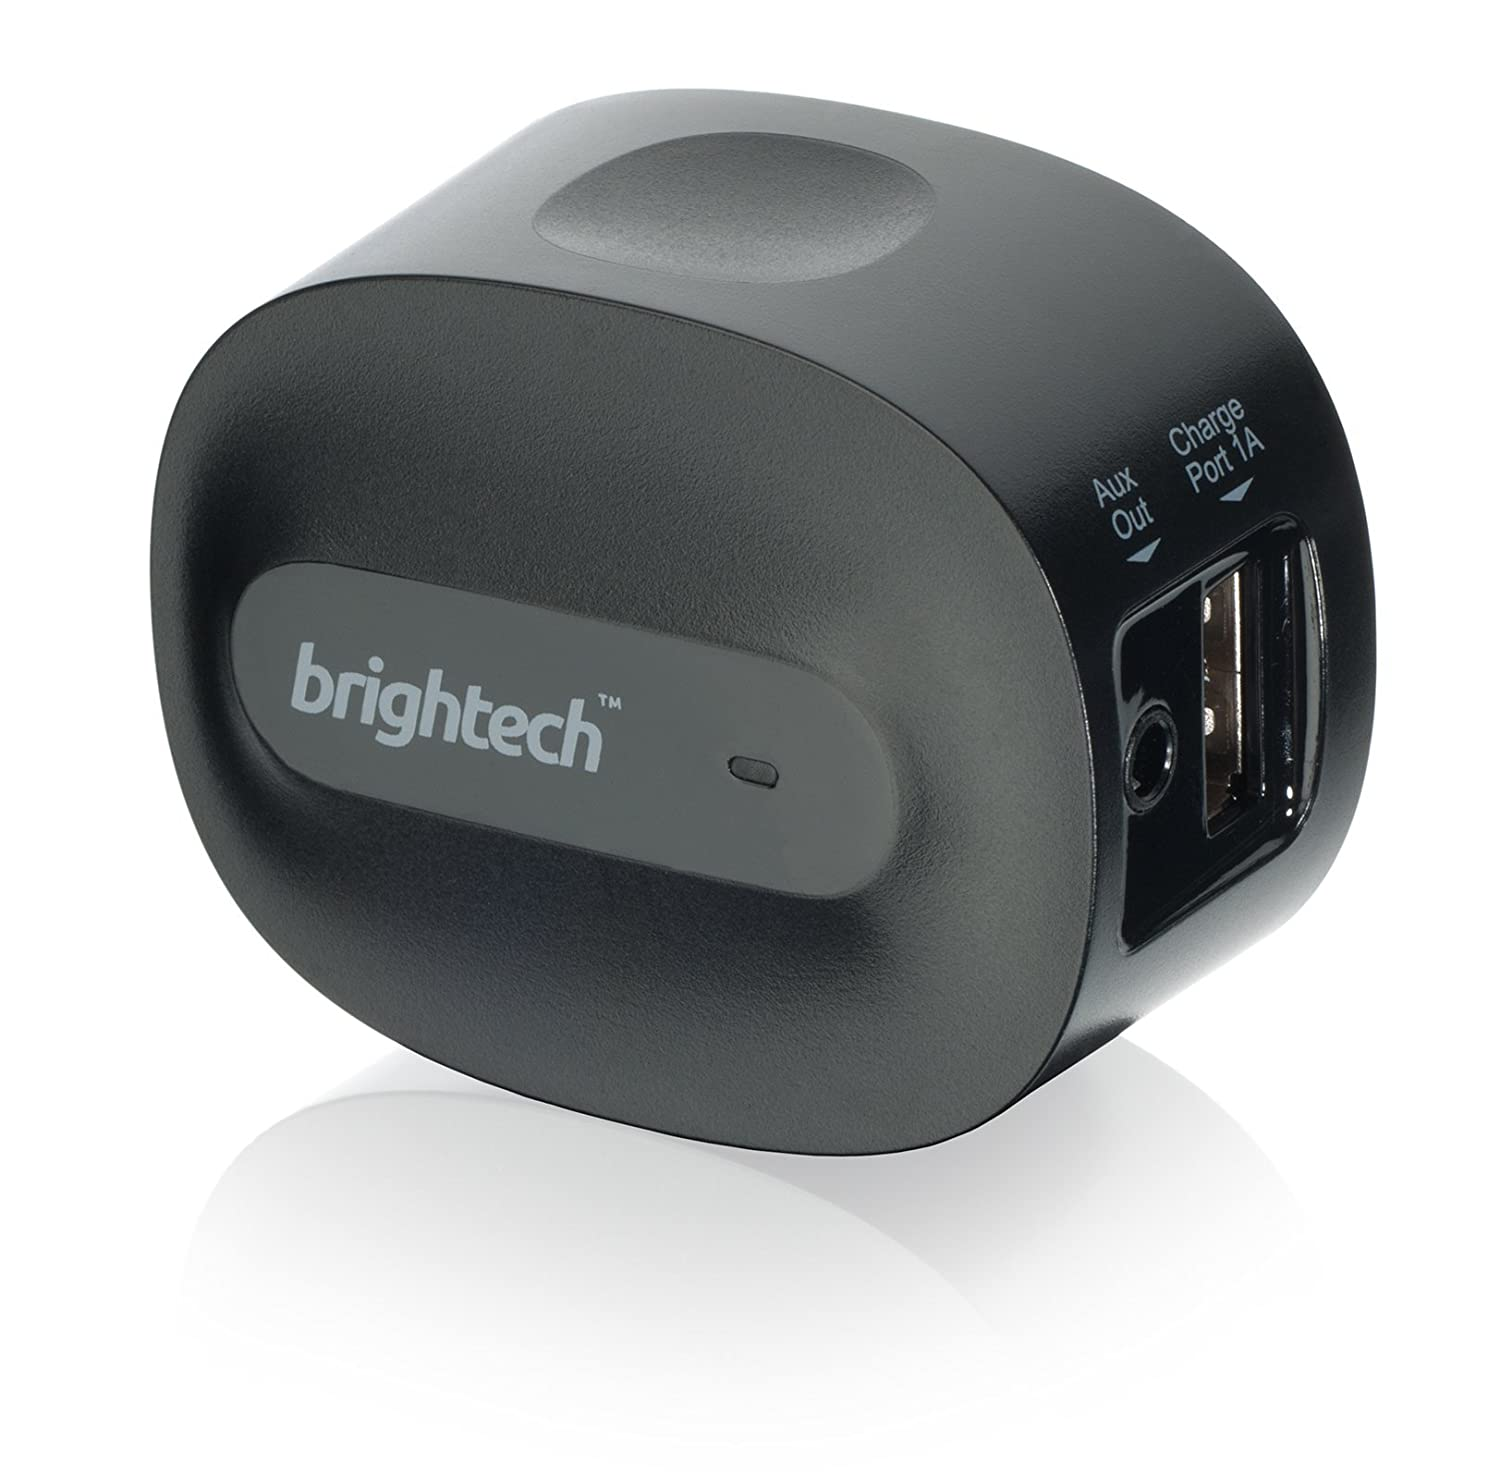 bluetooth receiver reviews